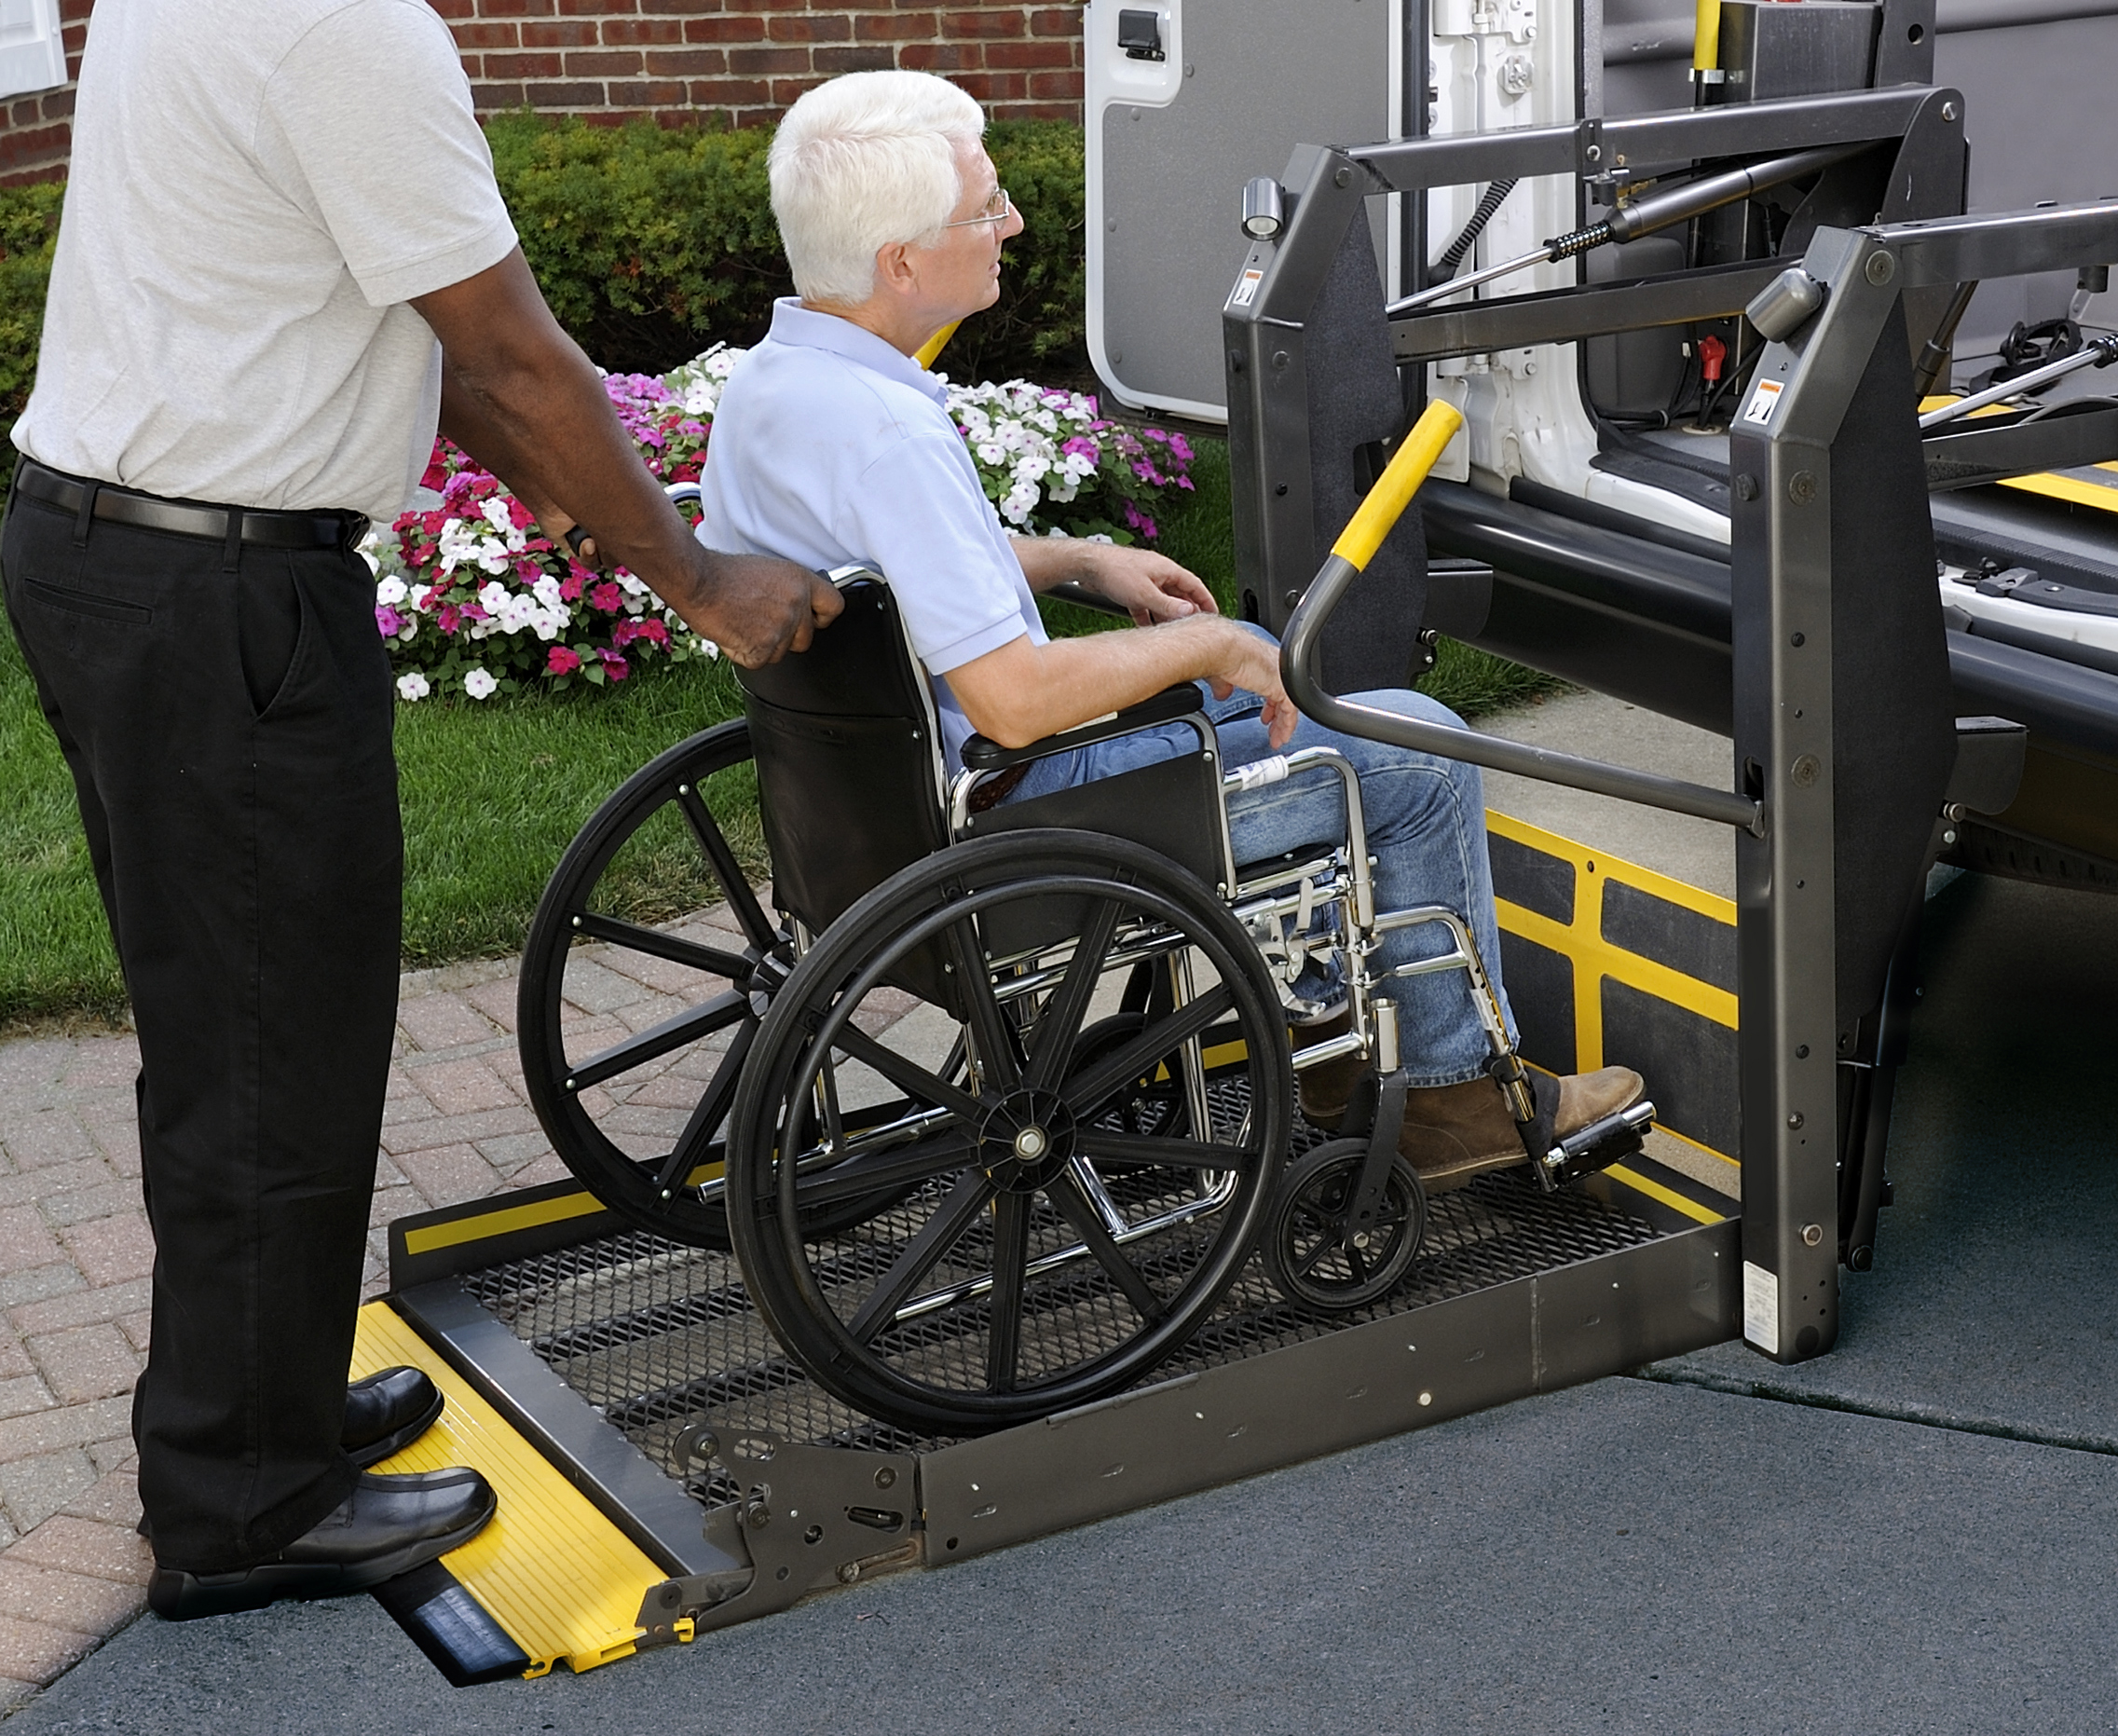 A non-emergency medical transportation representative is loading a wheel chair customer into a medical transportation vehicle.